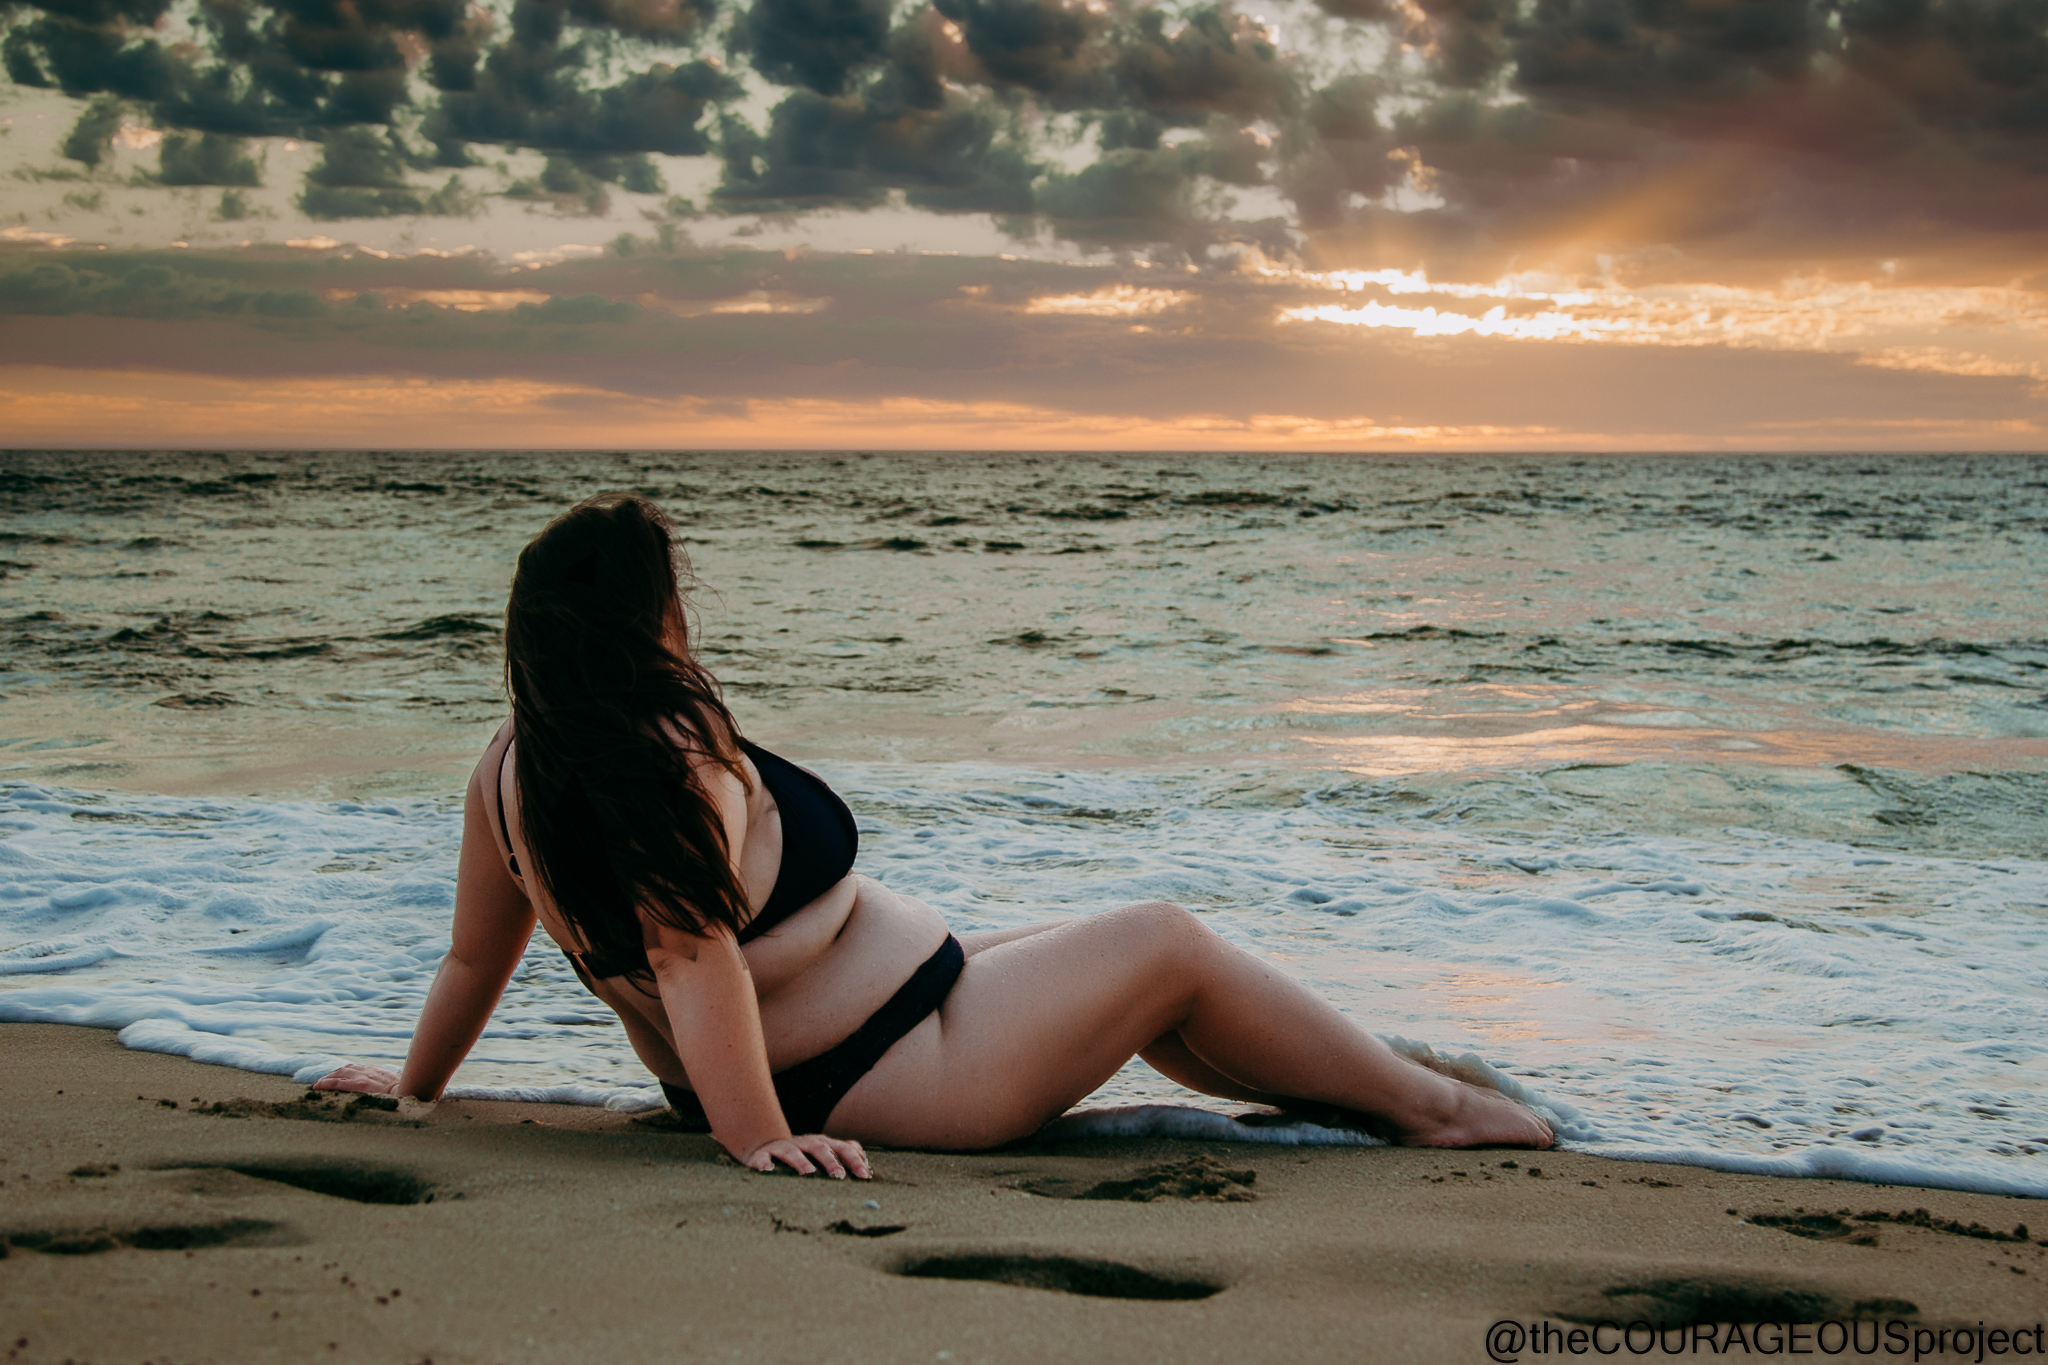 Plump young woman sitting on waters edge at beach at sunset, looking at clouds in the sky with sun shining through.  Woman is wearing a black bikini, leaning back on her hands and her long dark brown hair is flowing down her back and arms.